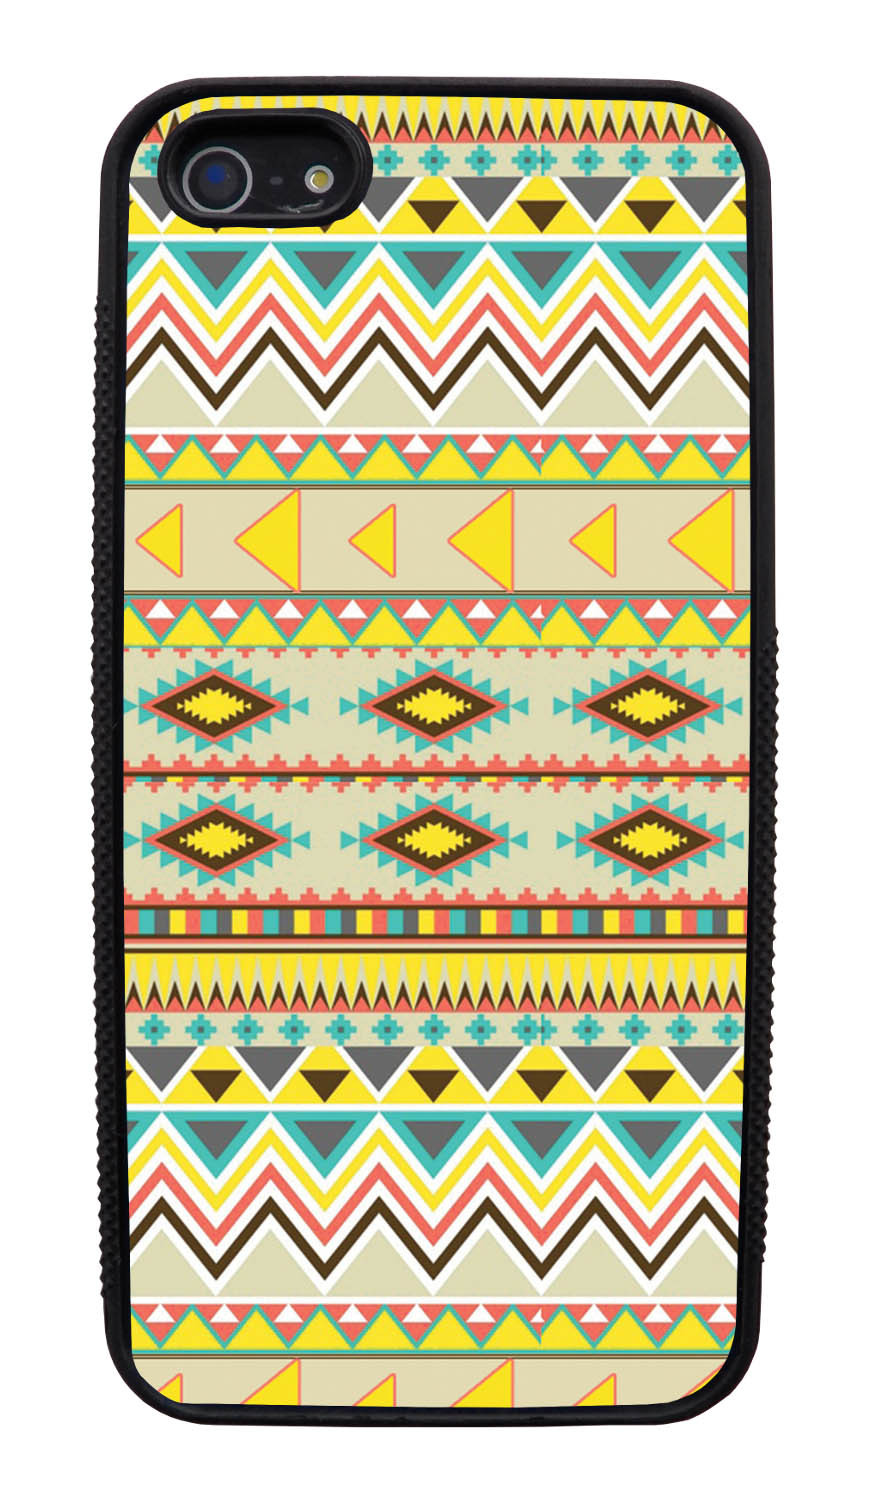 Apple iPhone 5 / 5S Aztec Case - Summer Colored - Geometric - Black Slim Rubber Case